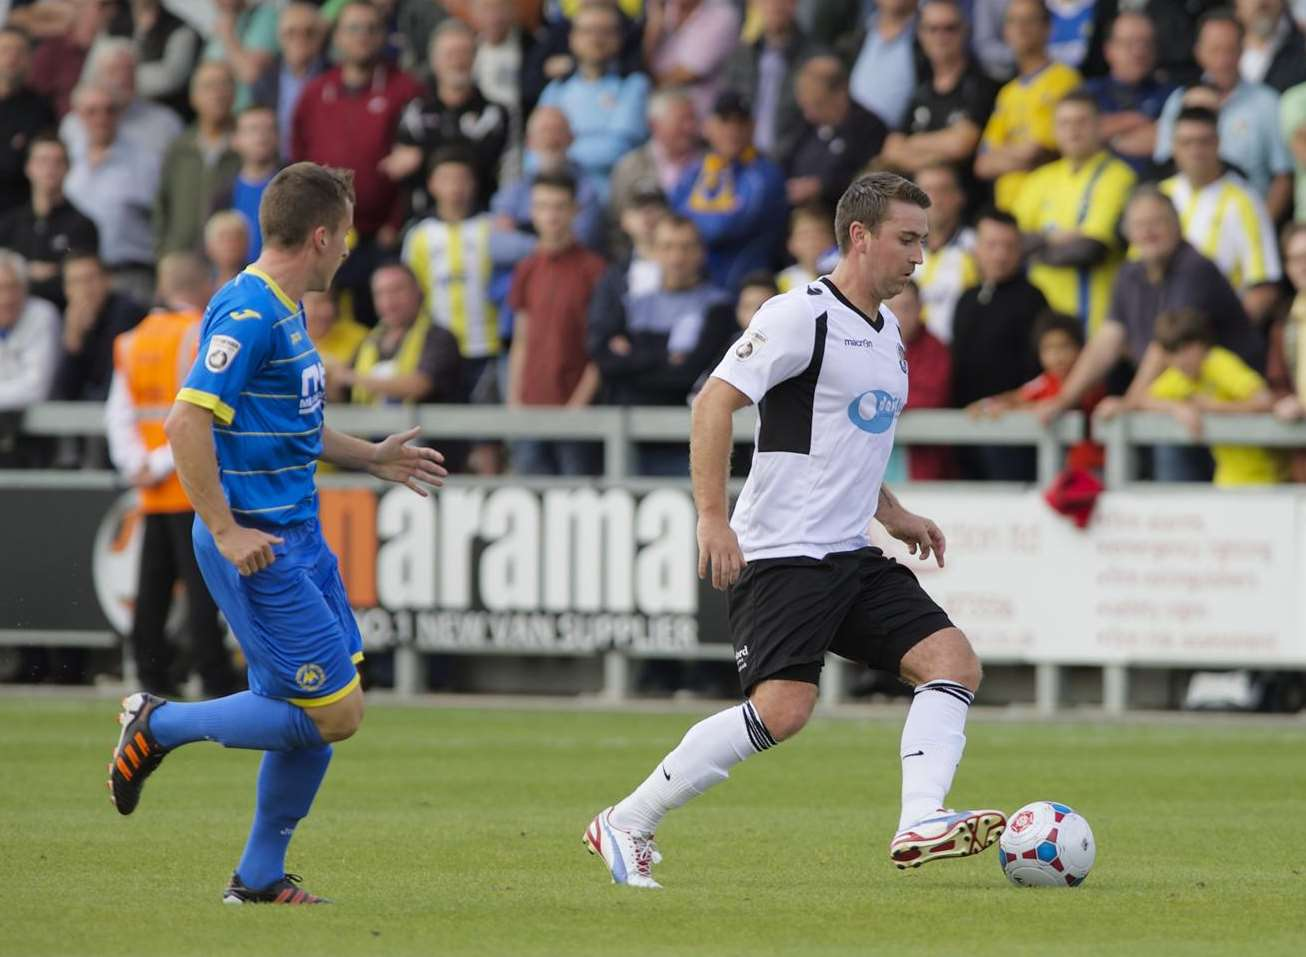 Dartford's Peter Sweeney on the ball against Torquay Picture: Andy Payton